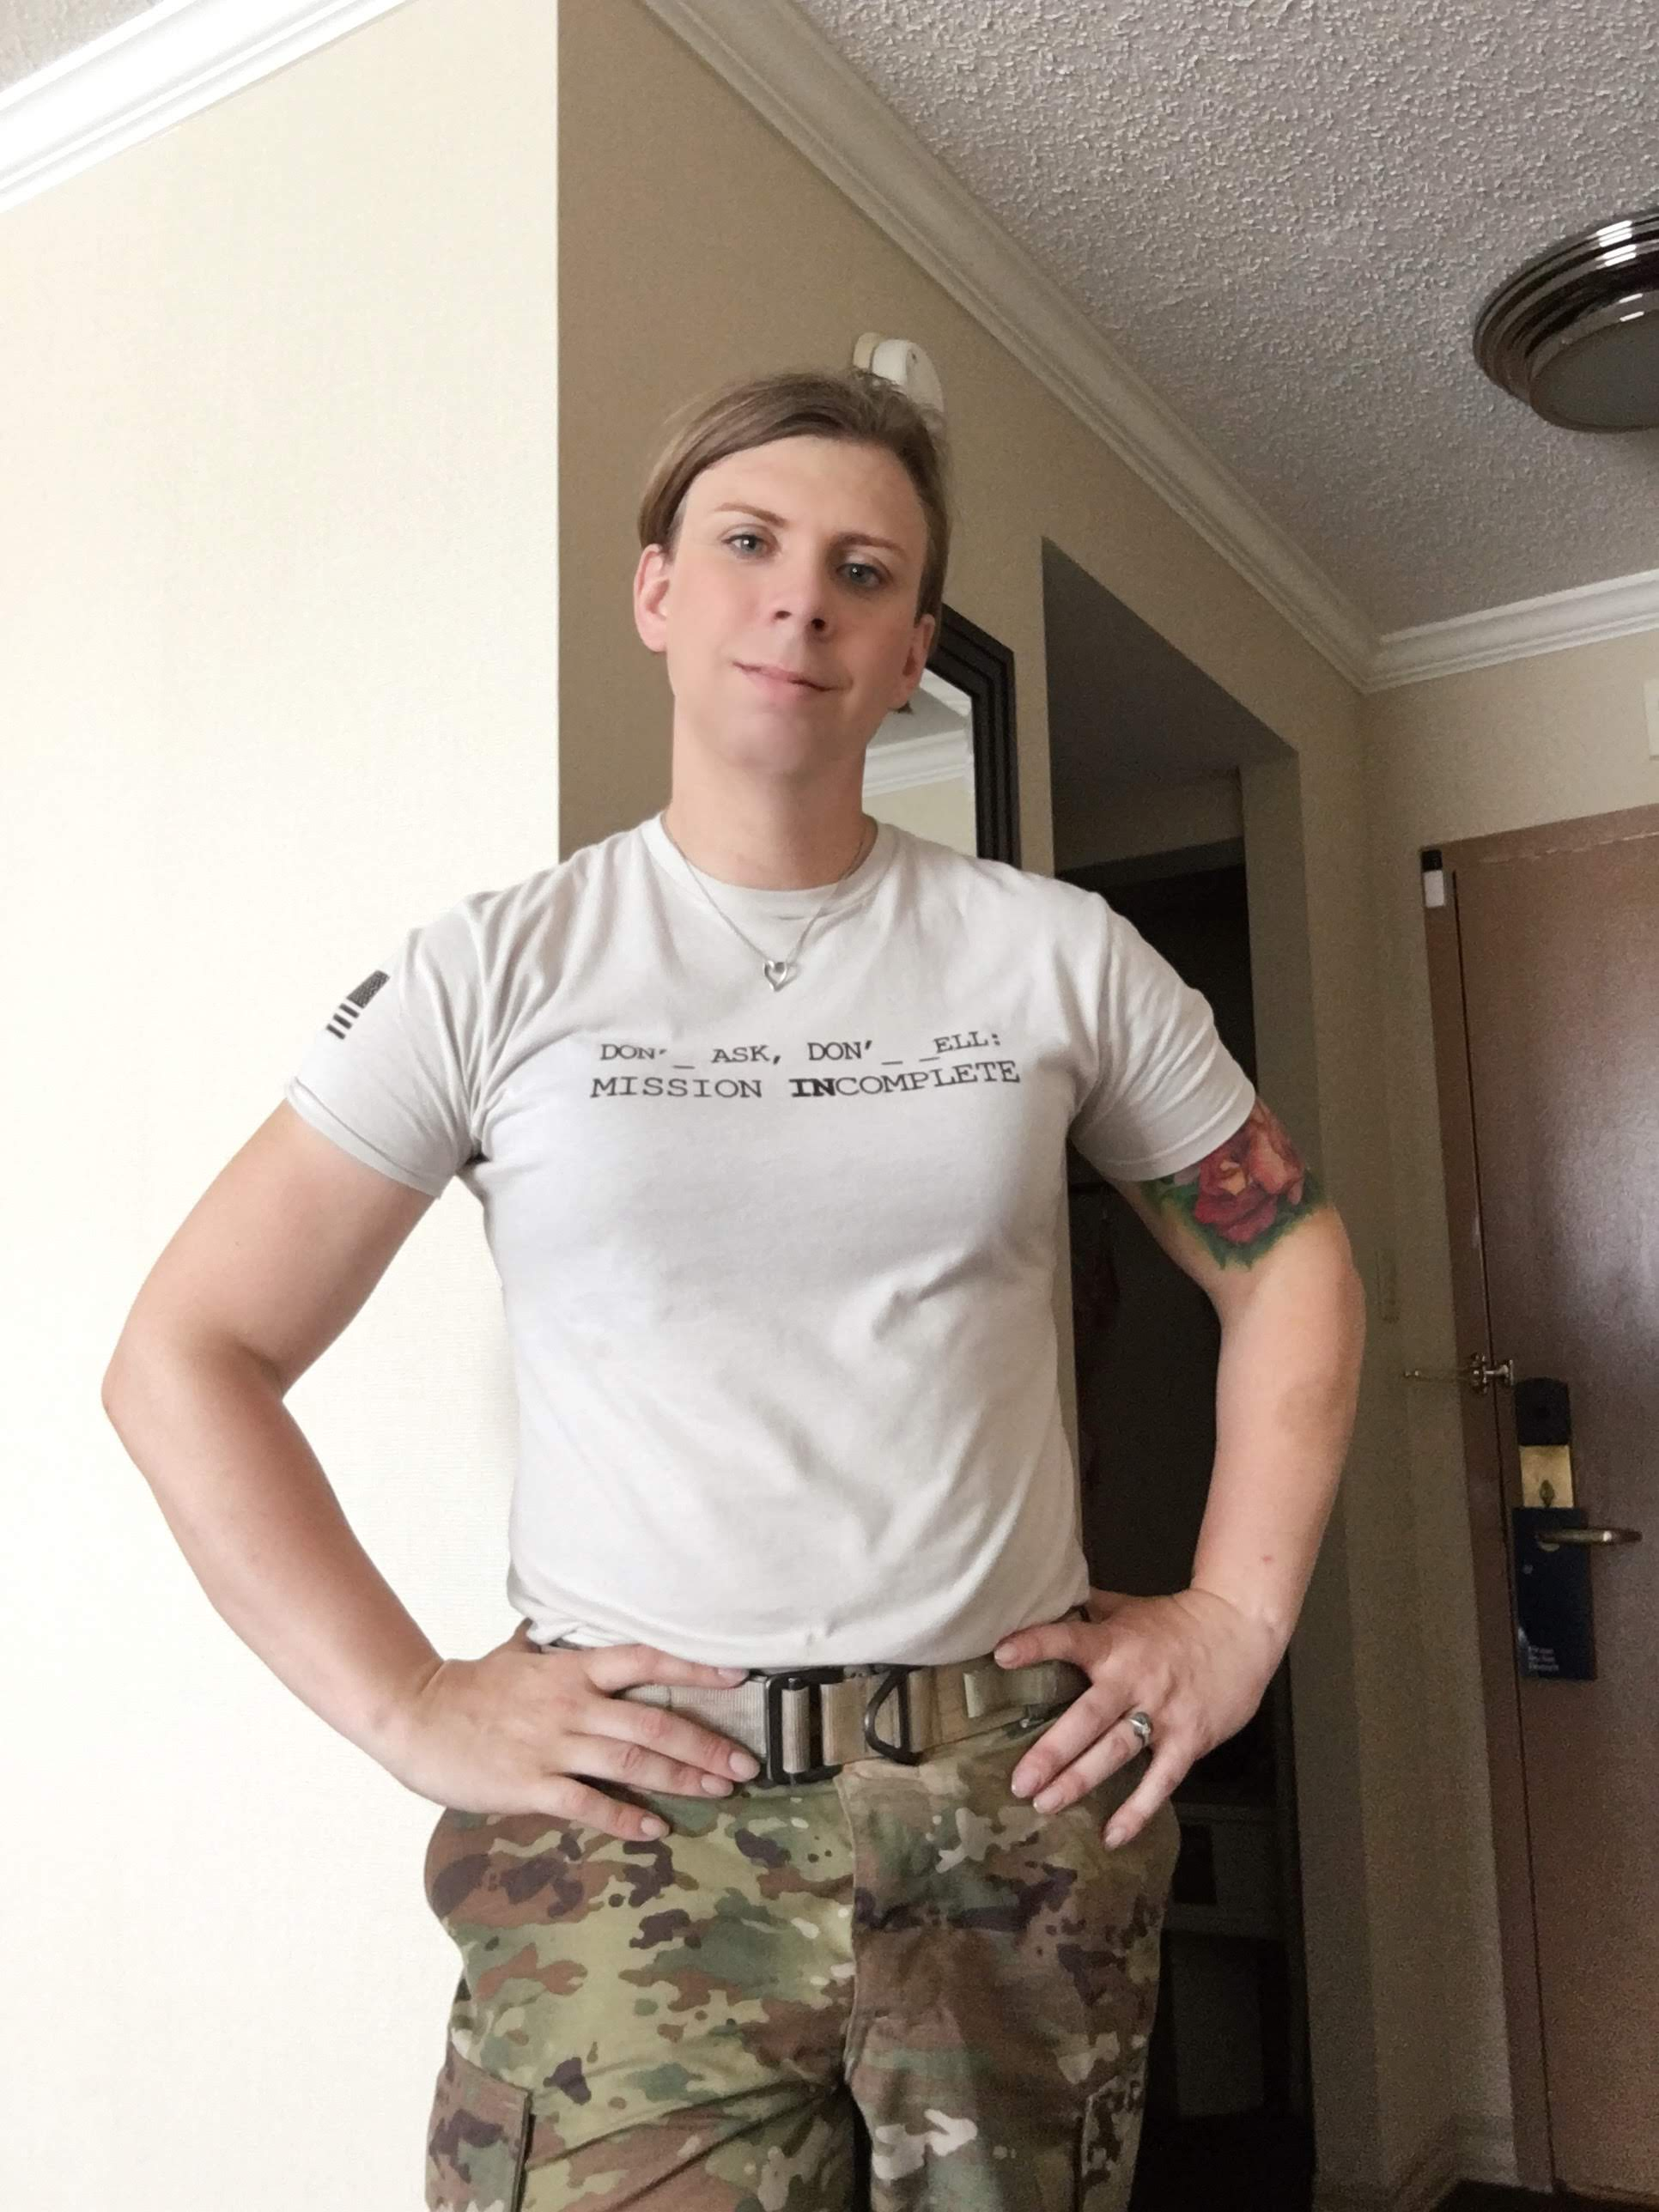 Trish King is America's first transgender infantryman. After a 20 year military career, she now fiercely advocates for the rights of LGBTQ service members and all marginalized communities across our country. The Brave Files.